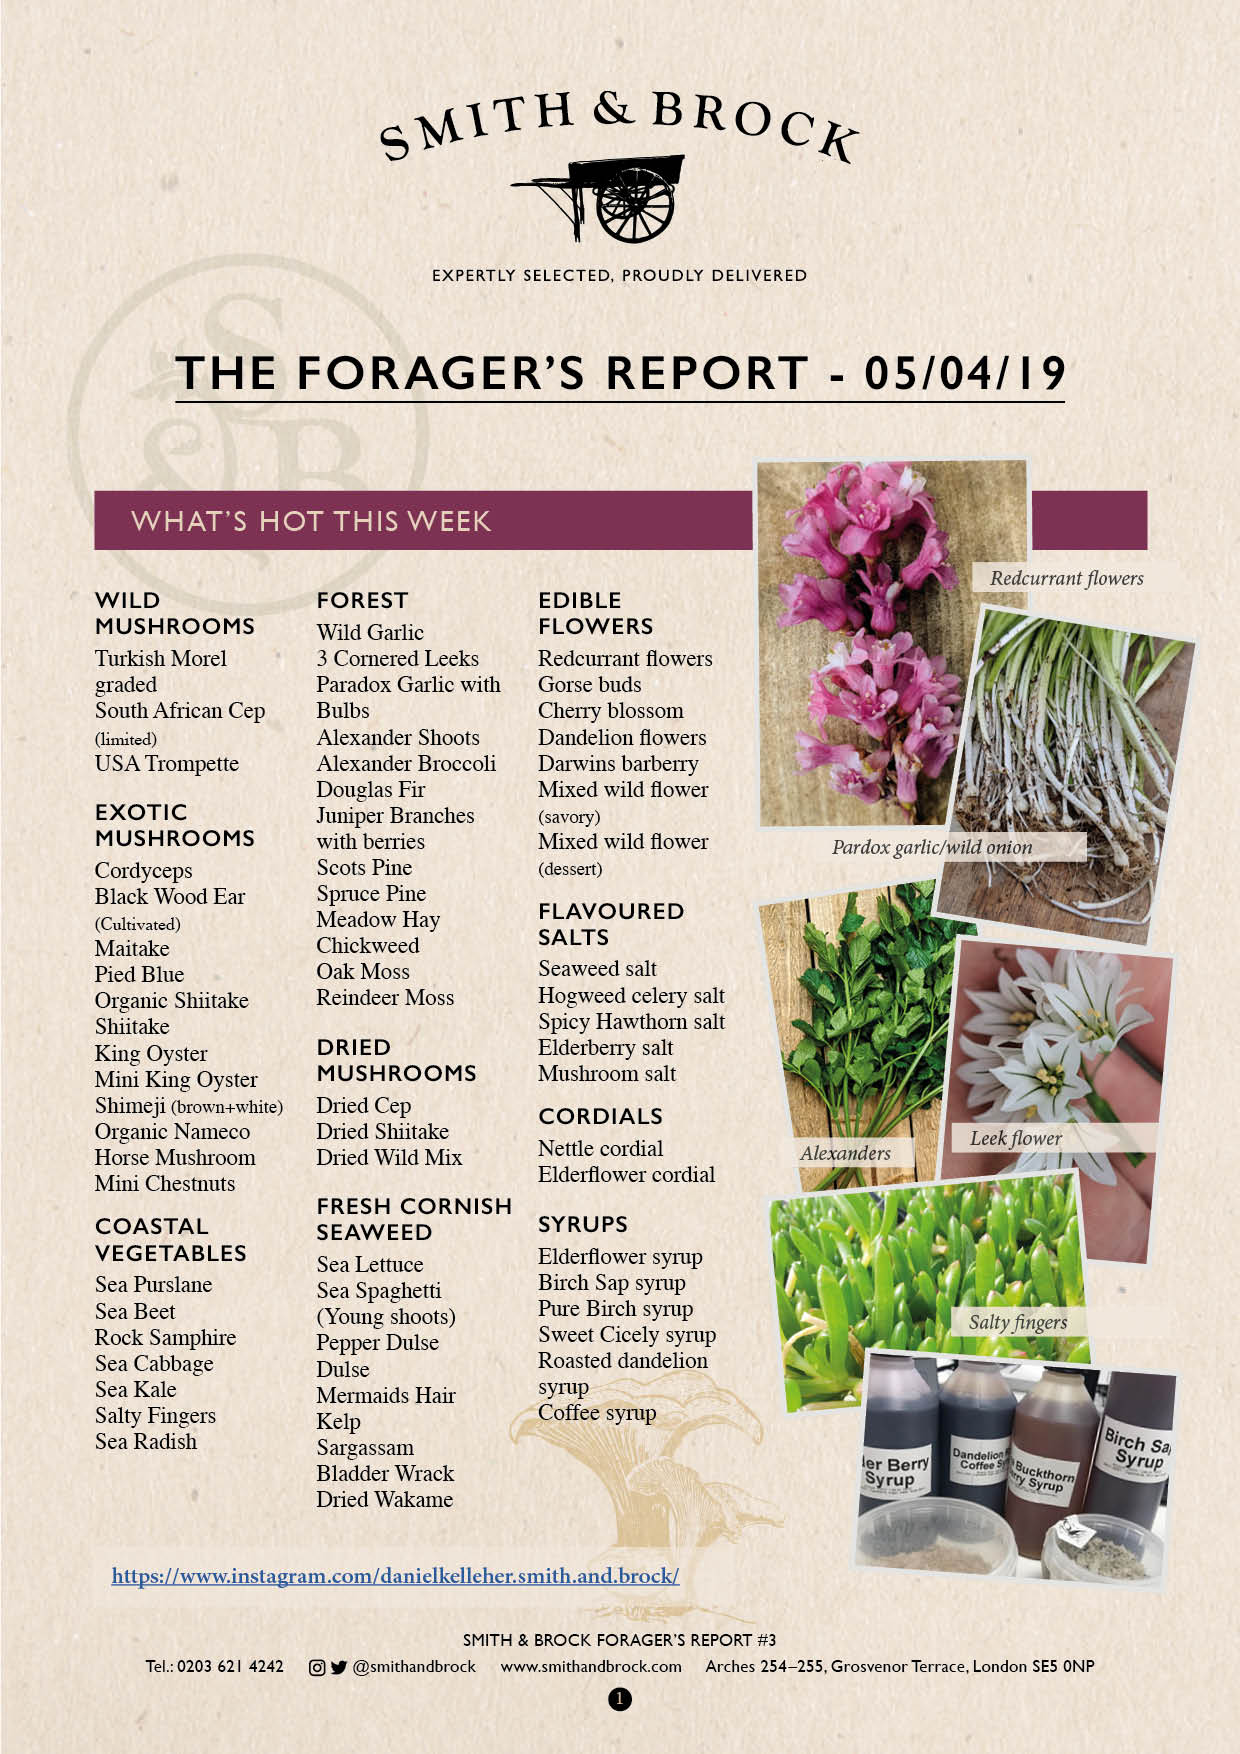 Smith&Brock Foraged Products Report 05 Apr 2019 3